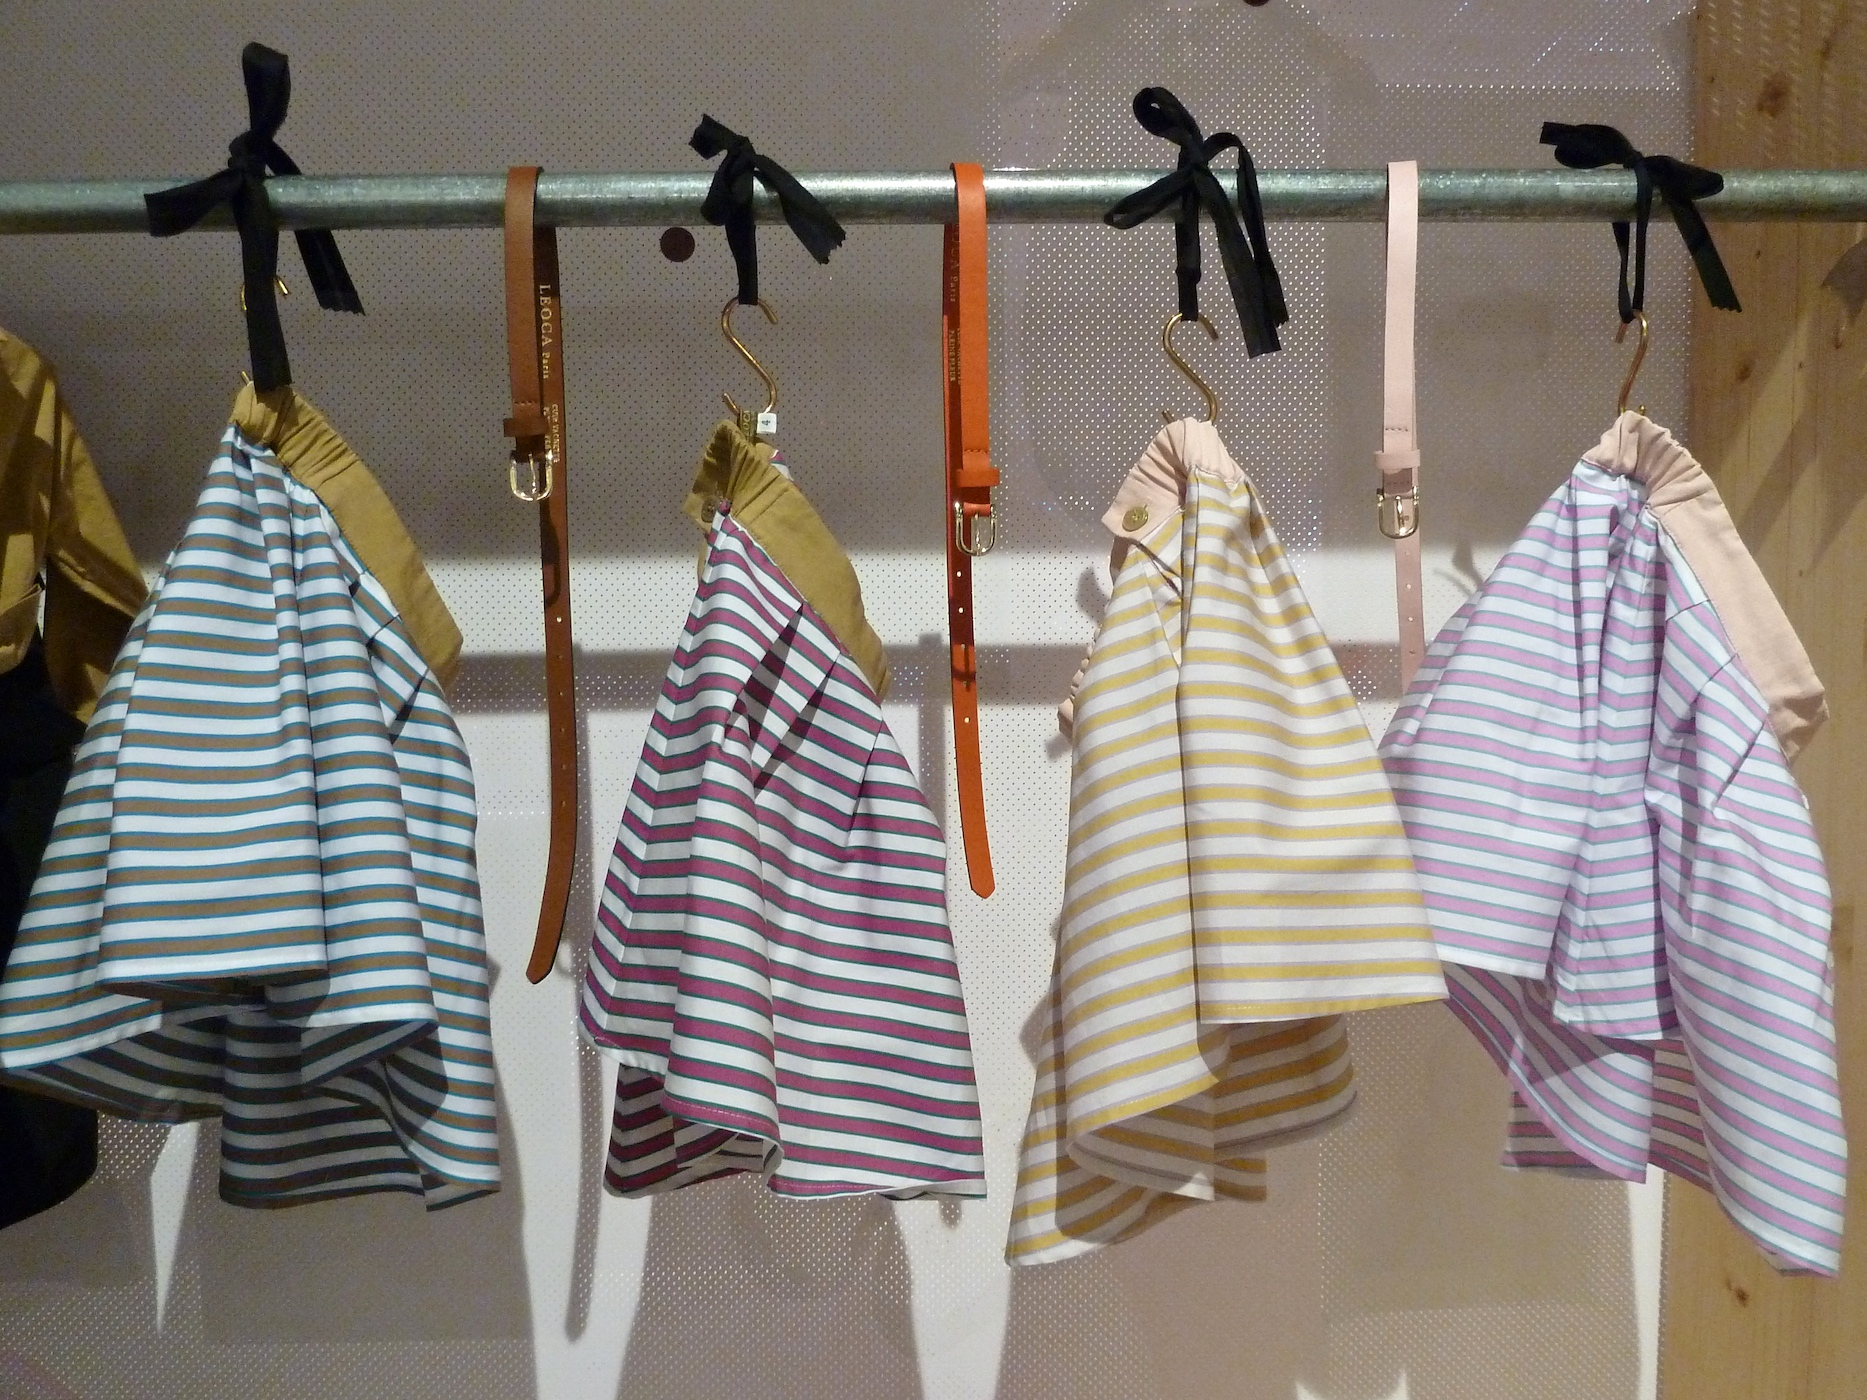 French class with silk striped skirts from Leoca Paris for girlswear summer 2012 at Pitti Bimbo 73